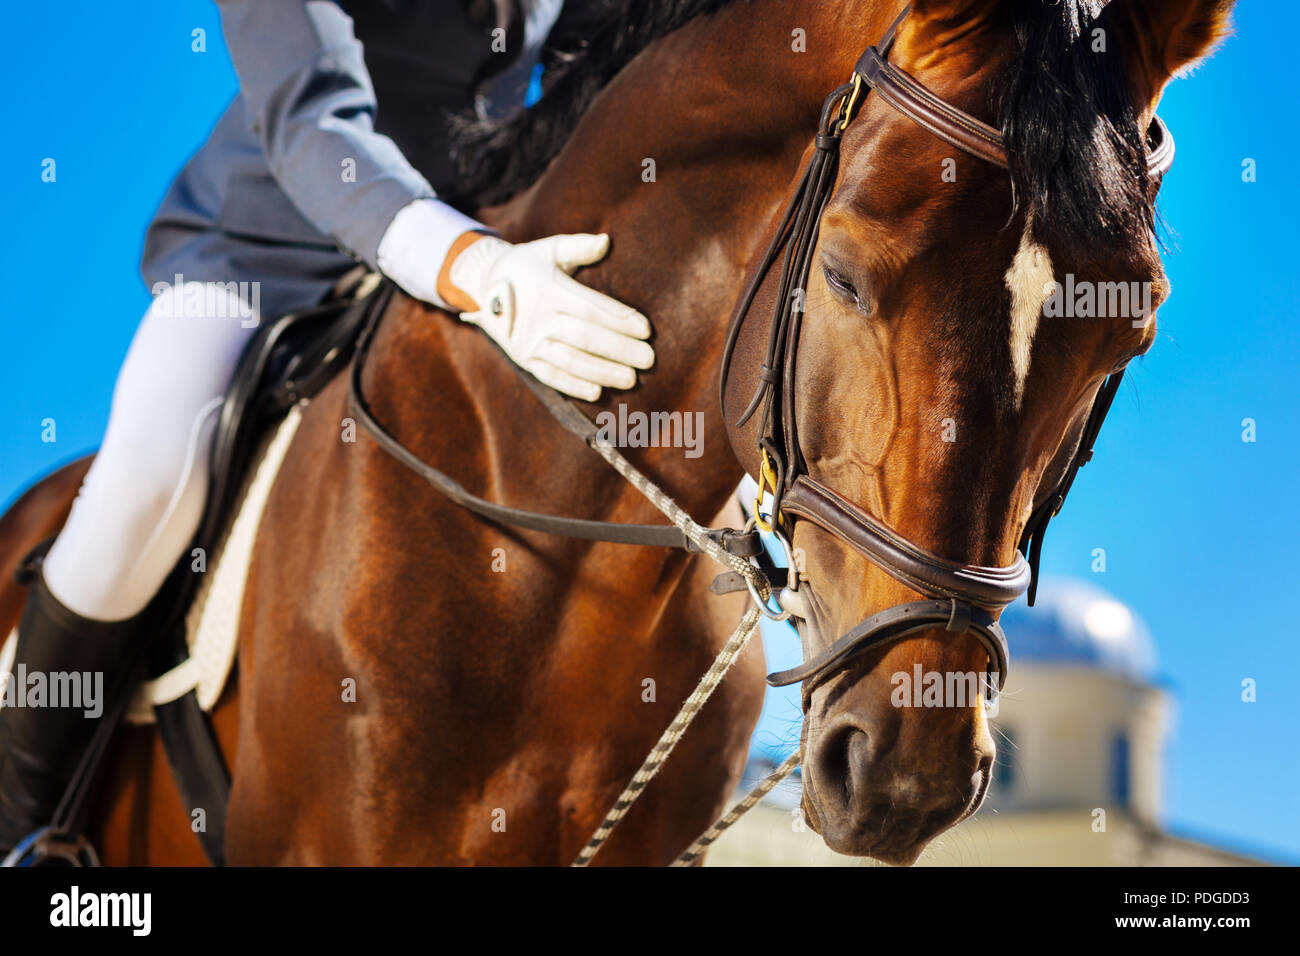 Caring equestrian calming his favorite horse before horserace - Stock Image